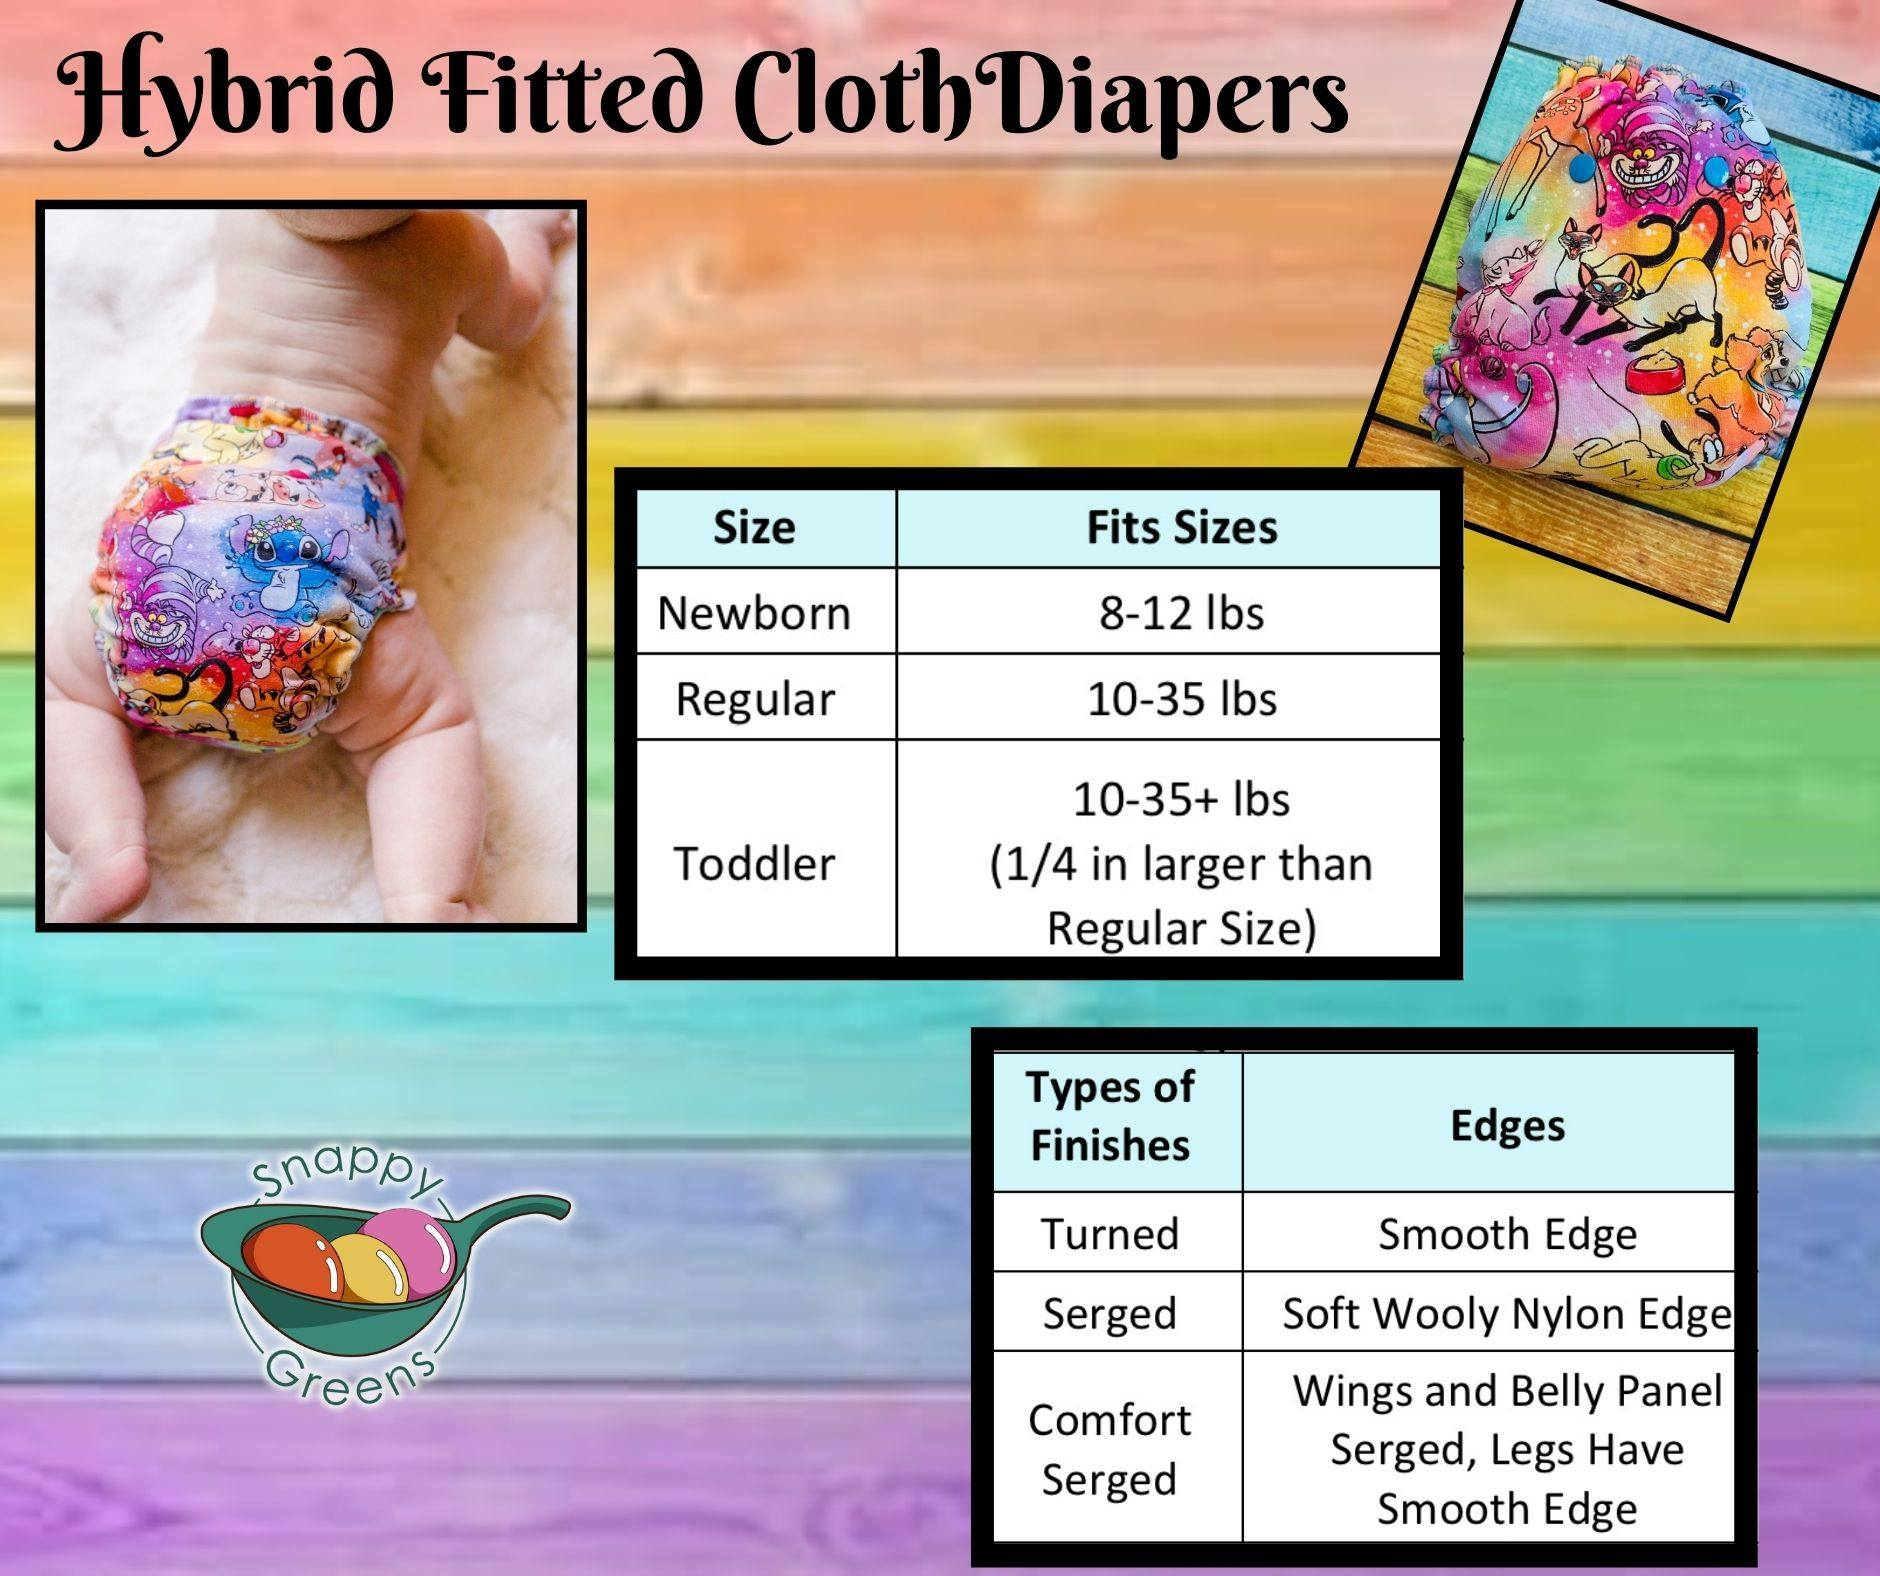 Fleece Hybrid Fitted Cloth Diaper - Mermaid Constellations Fleece